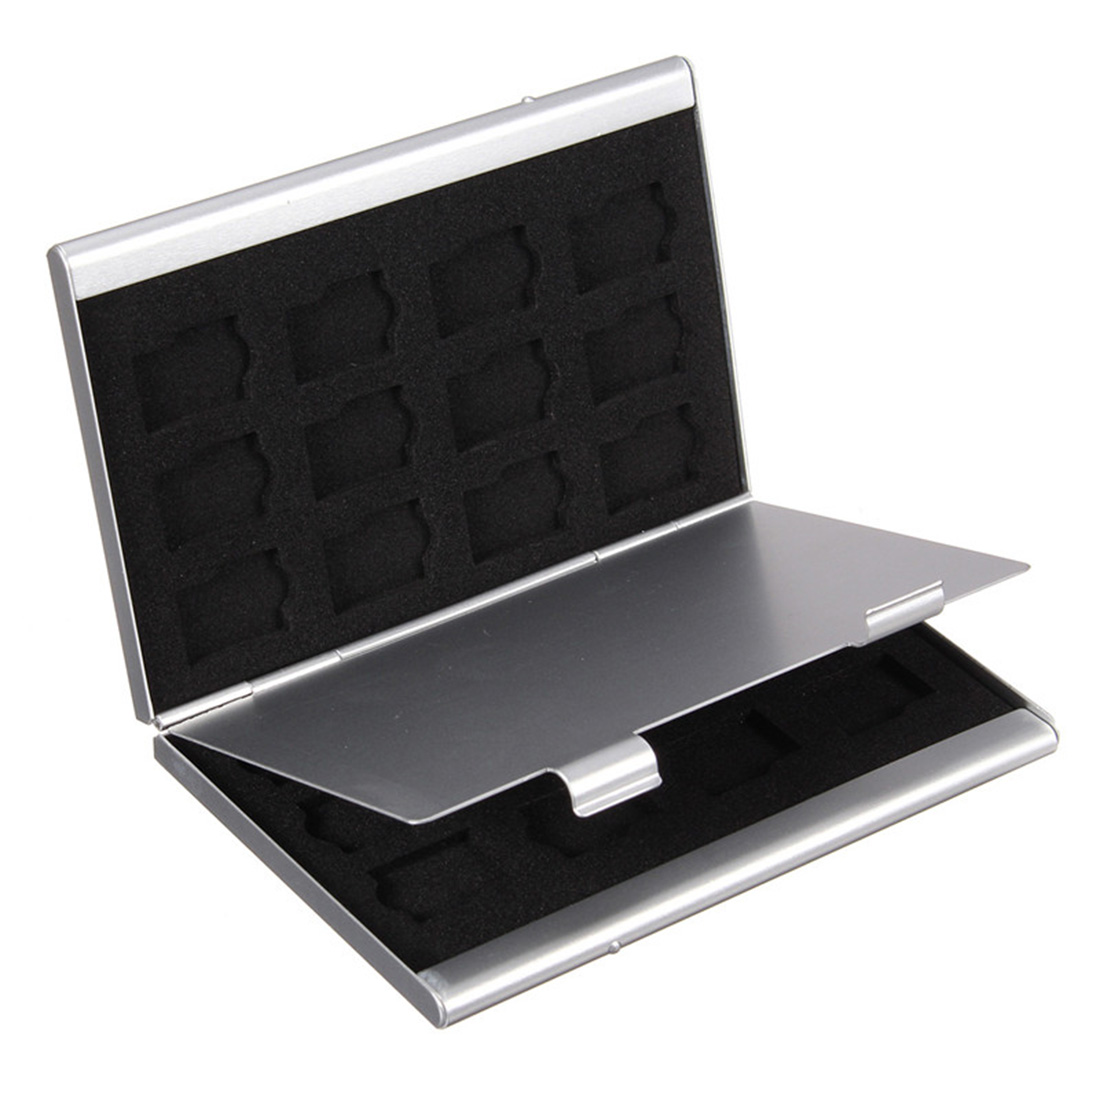 NOYOKERE New Modern Style High Quality Silver Aluminum Memory Card Storage Case Box Holders For Micro Memory SD Card 24TF